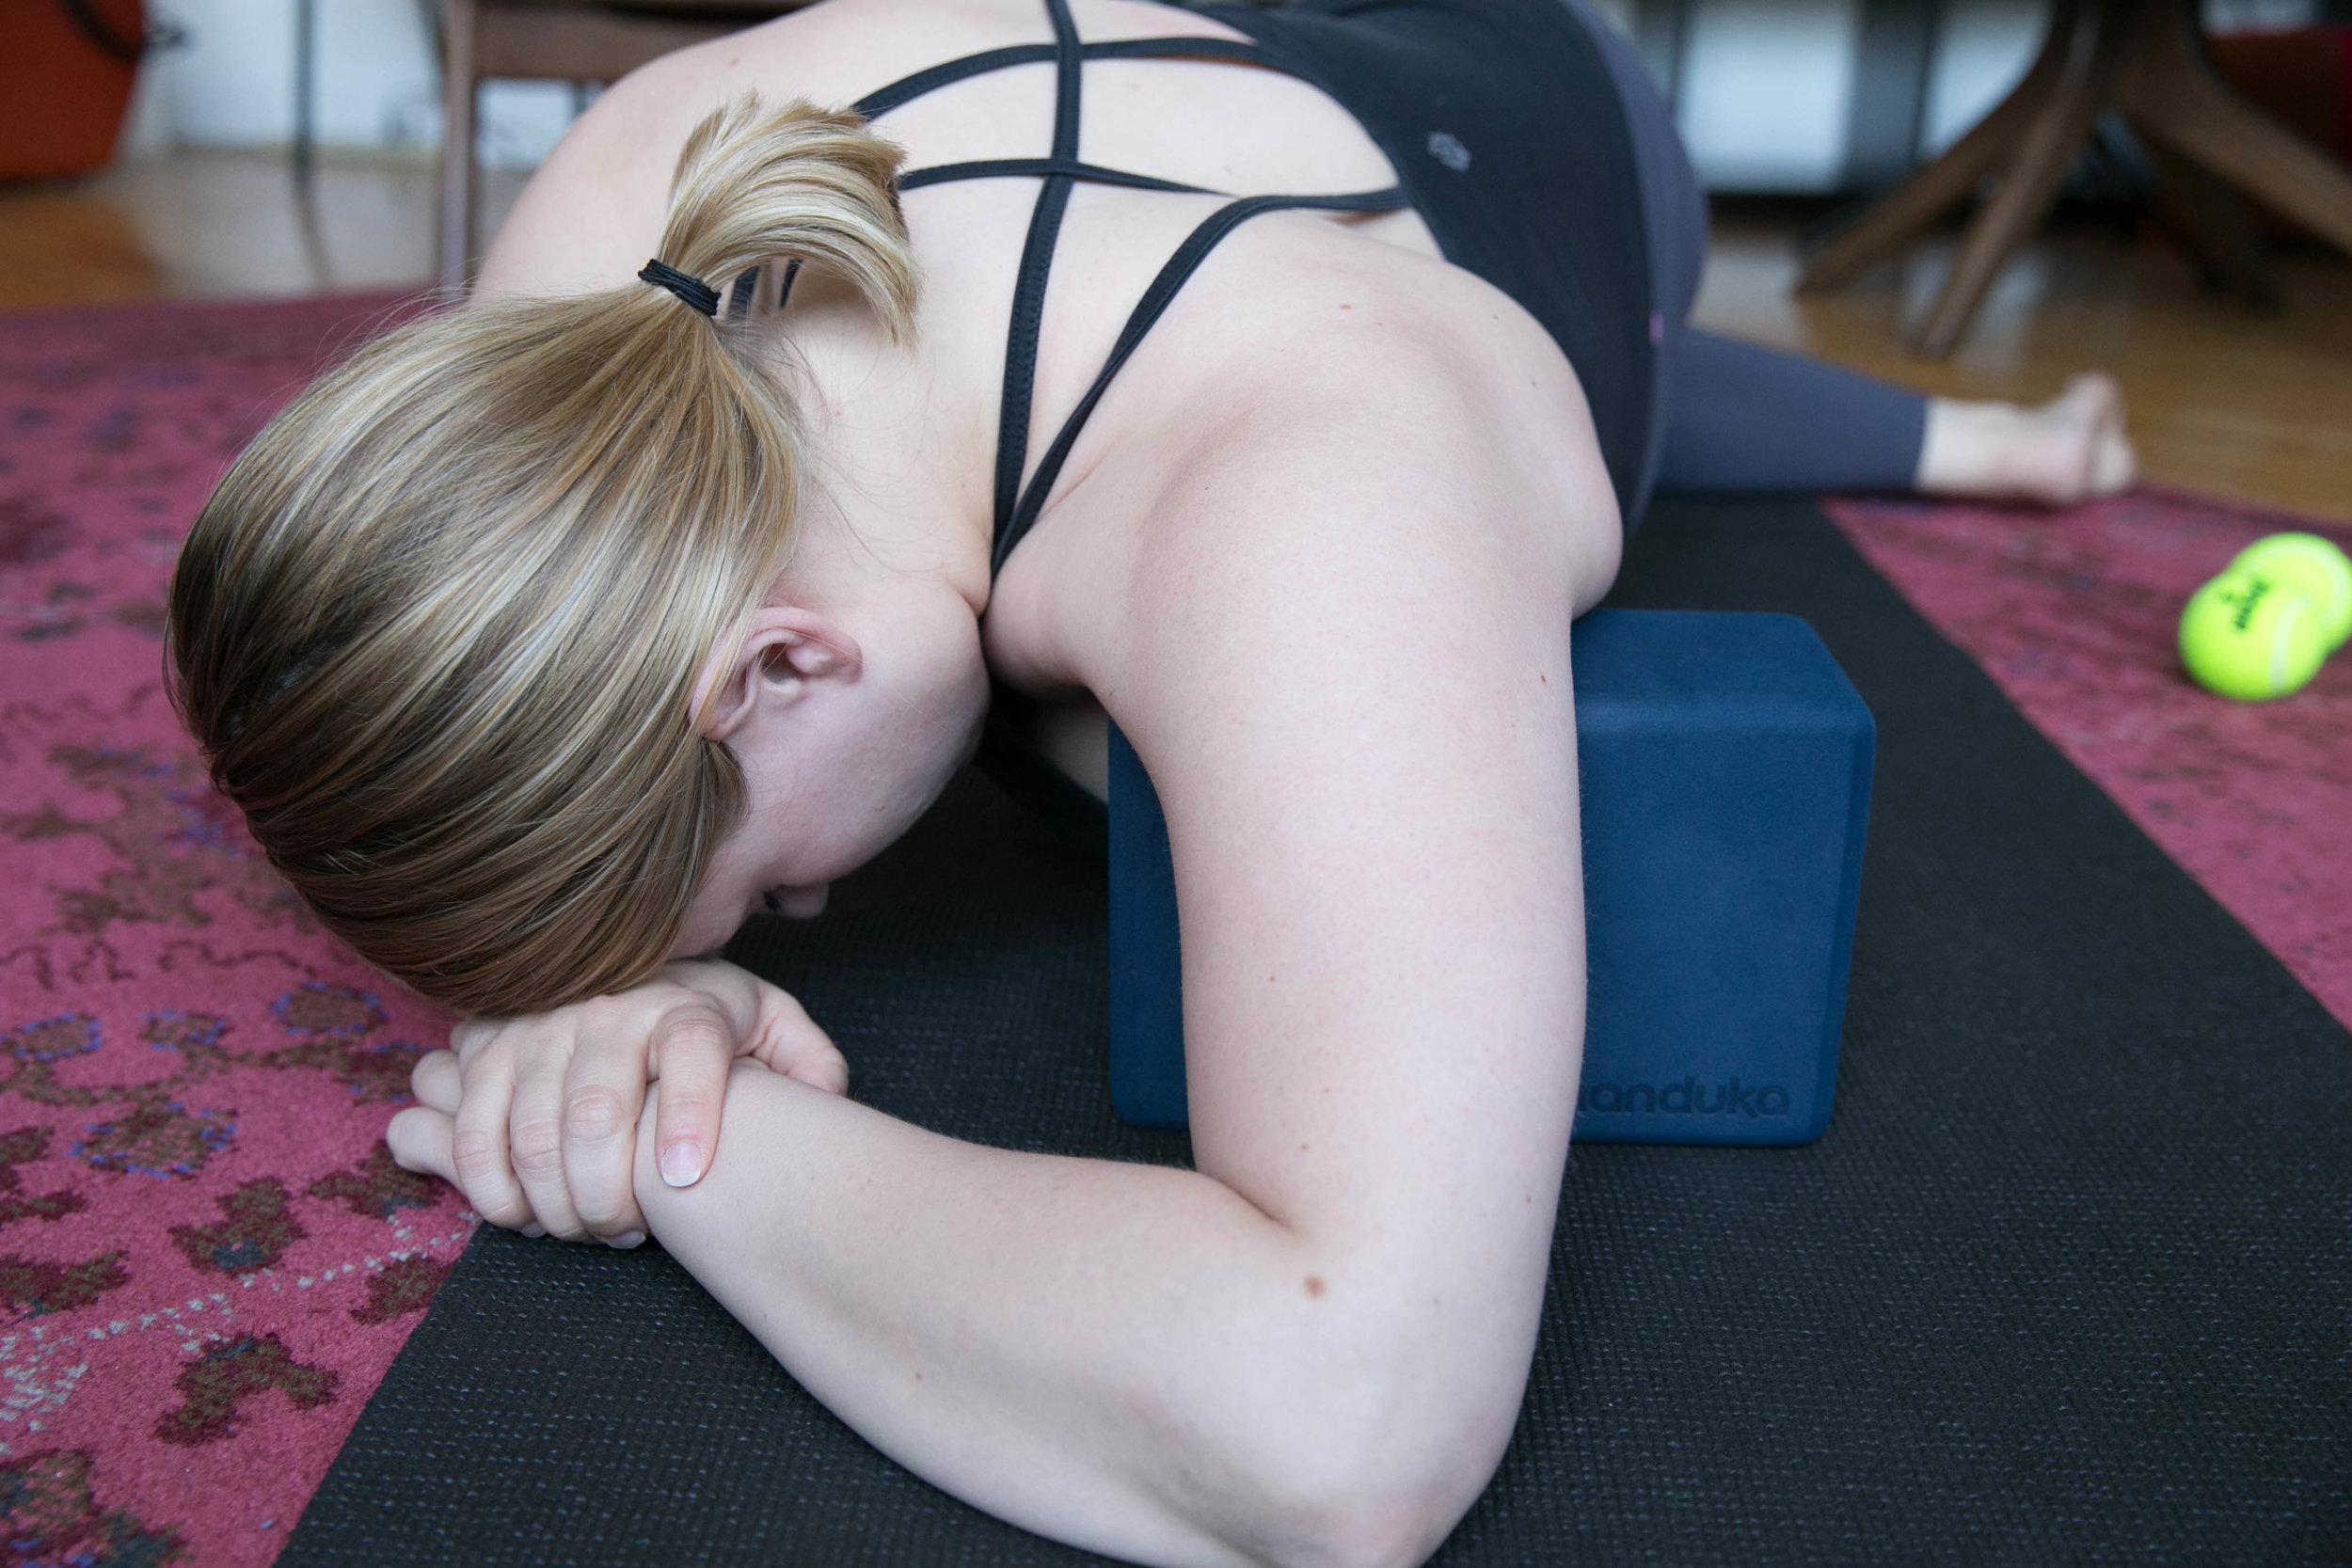 3. - Roll forward to release tension through the front of the shoulder (pecs). Breath deeply throughout and let the tension go on your exhale.